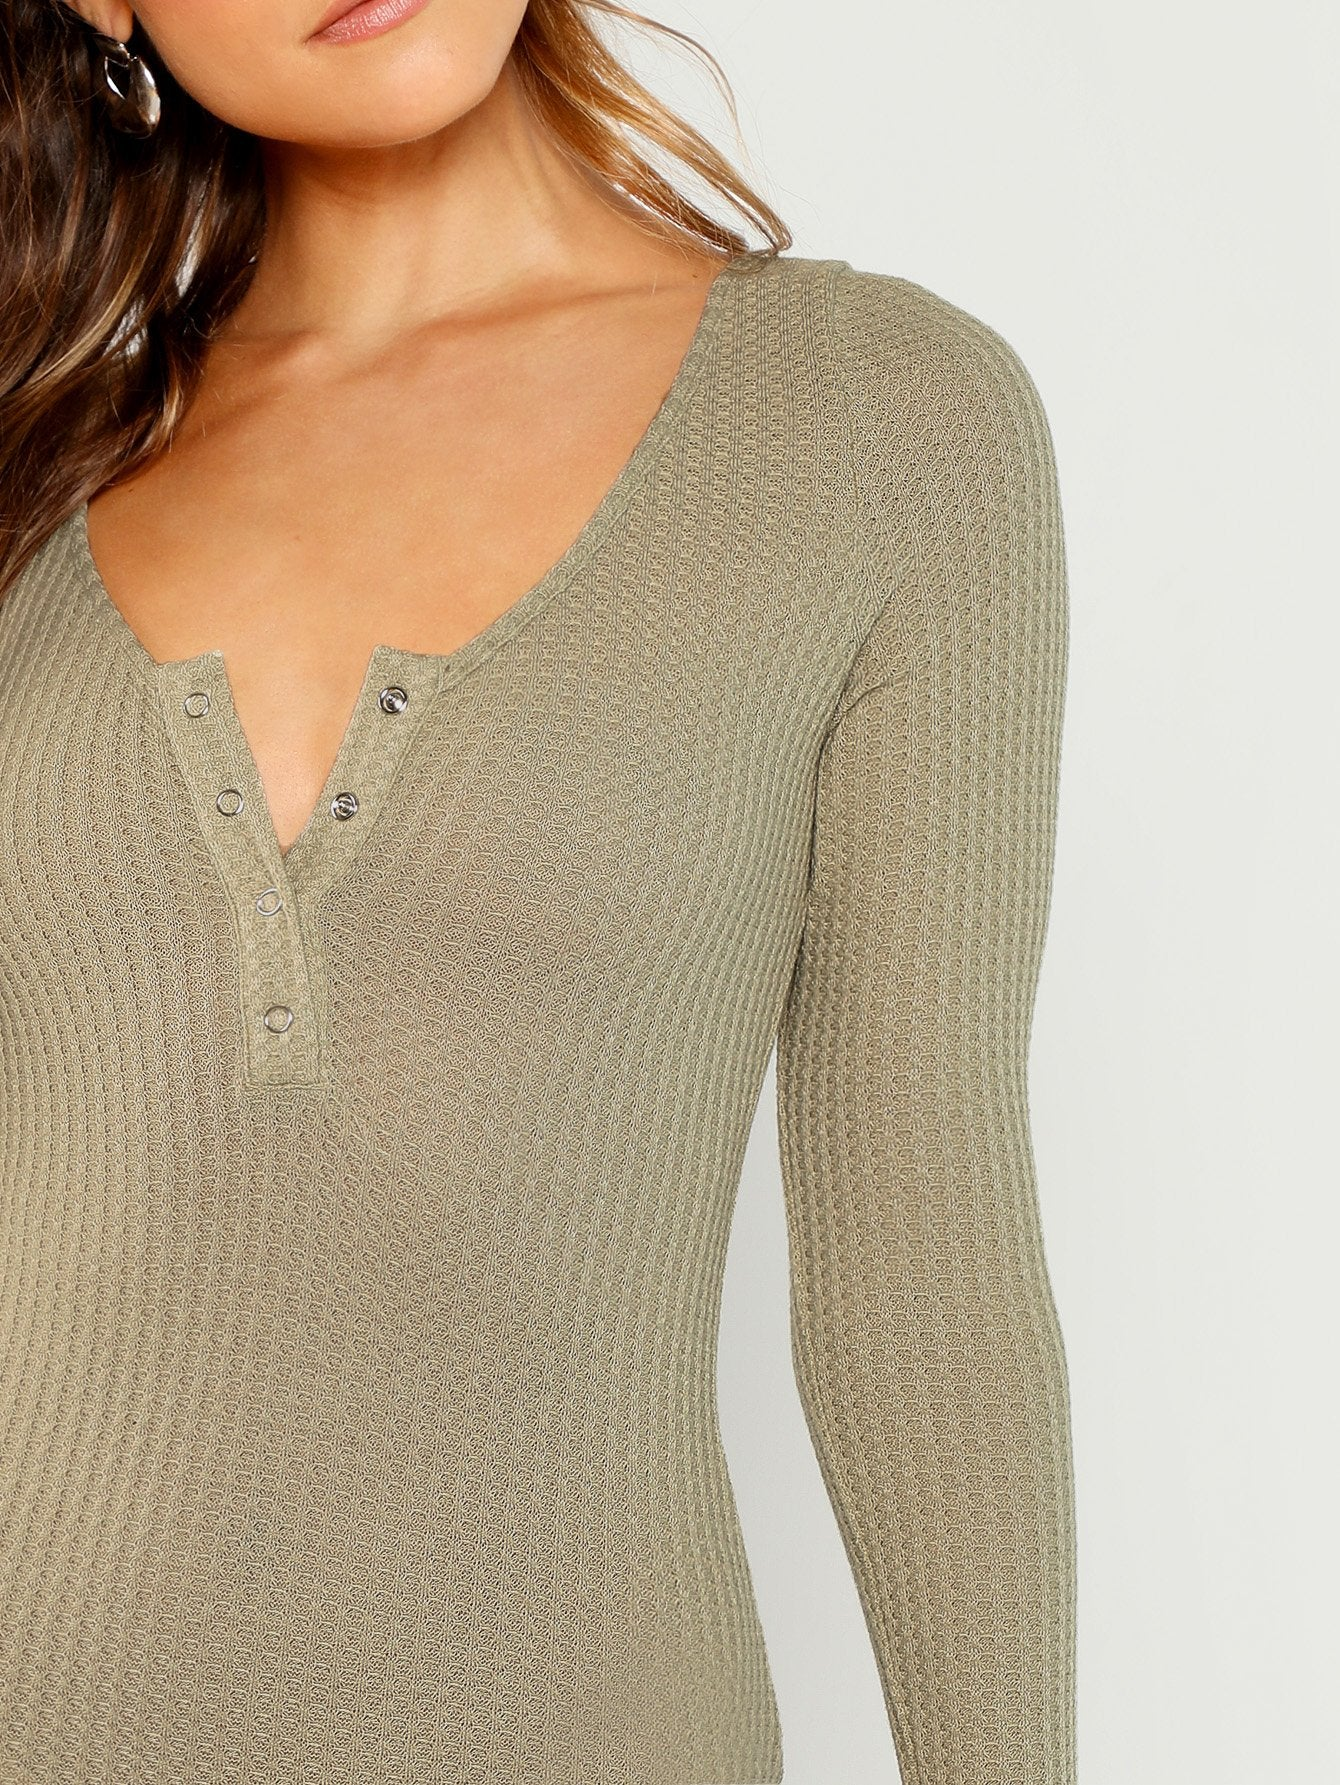 Snap Button Neck Waffle Knit Bodysuit-Sunshine's Boutique & Gifts